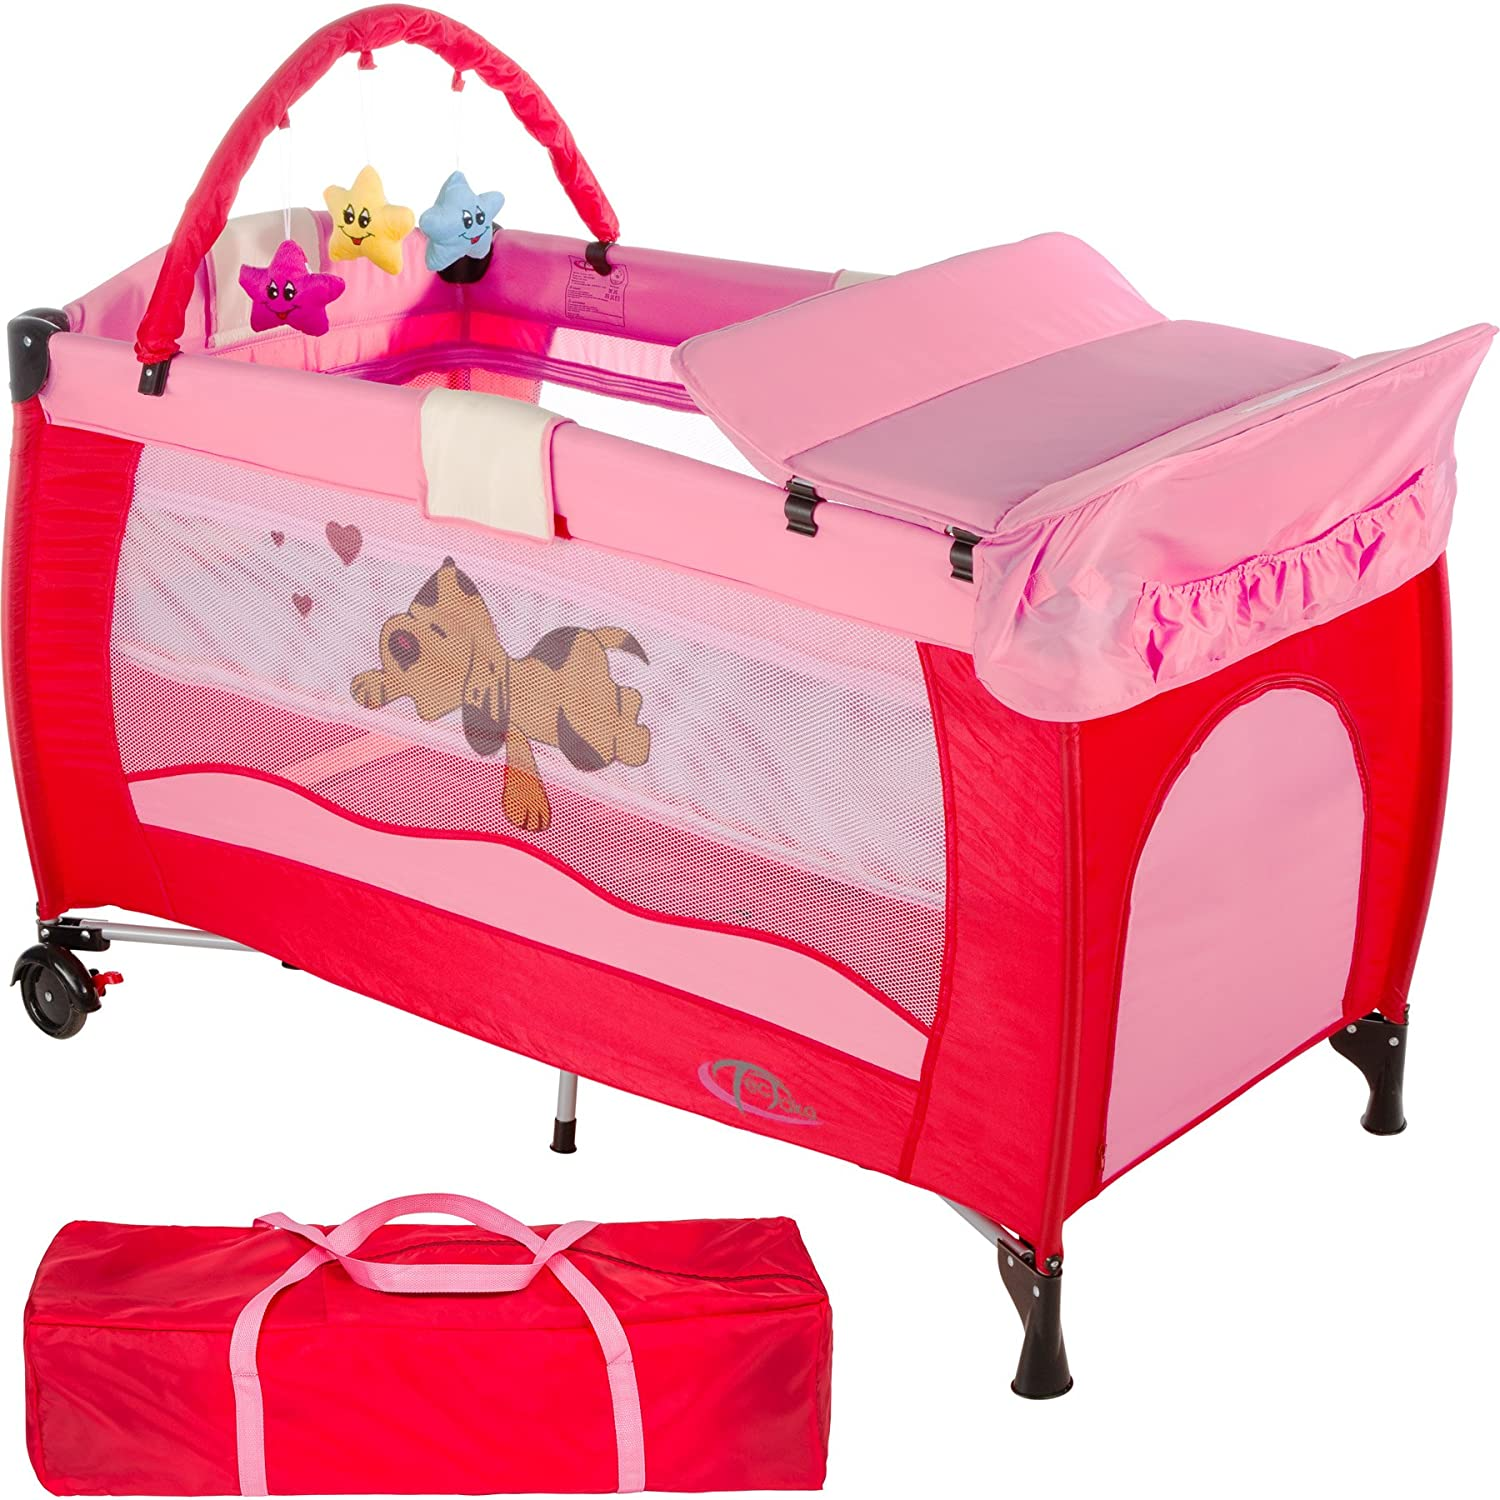 TecTake New portable child baby travel cot bed playpen with entryway -different colours- (Coffee) 800032